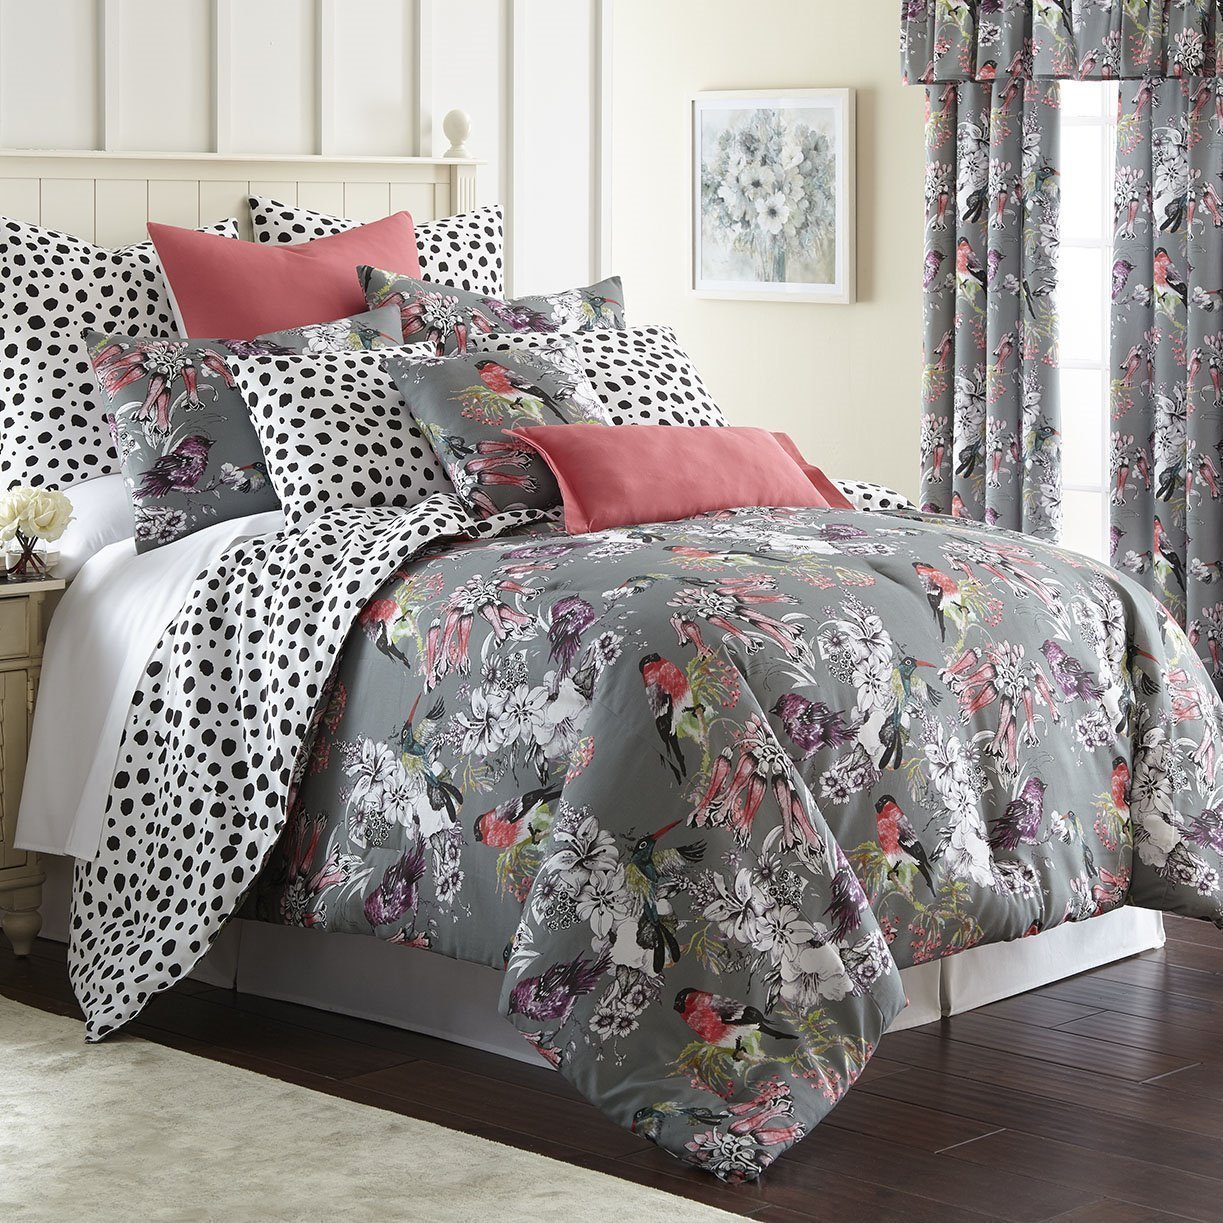 Birds In Bliss Duvet Cover Set Reversible Super King